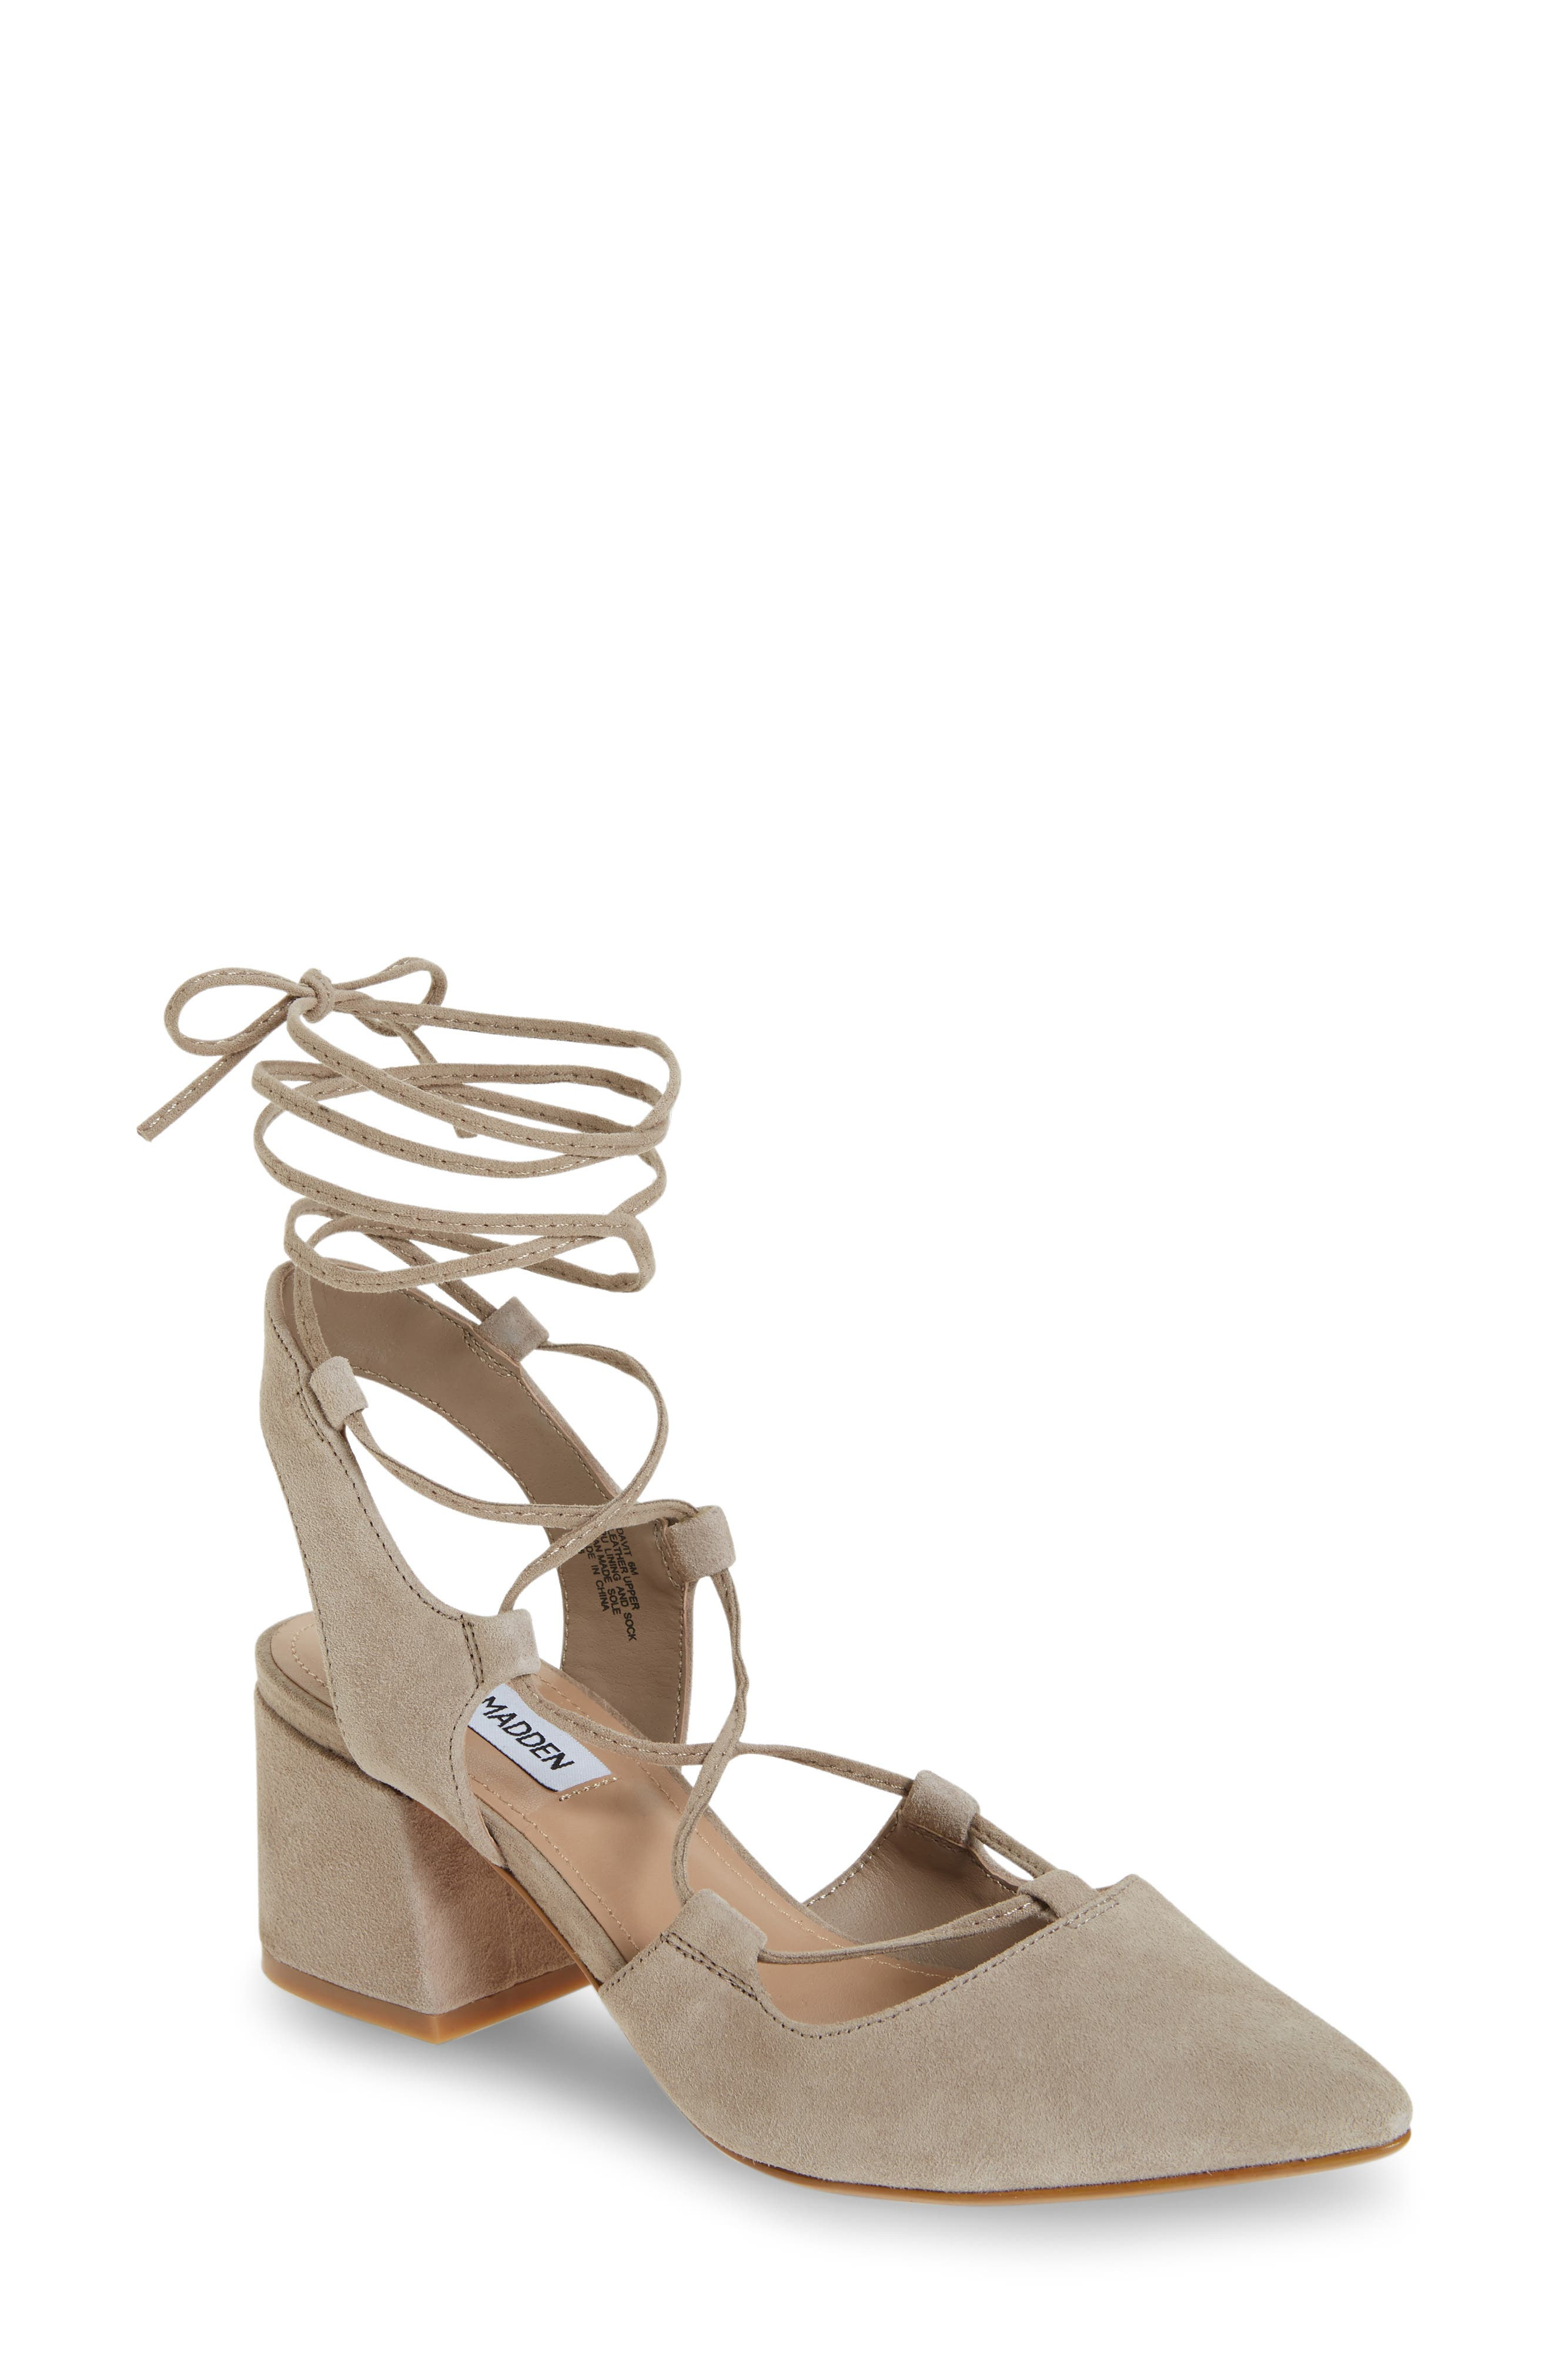 Main Image - Steve Madden Davit Lace-Up Pump (Women)